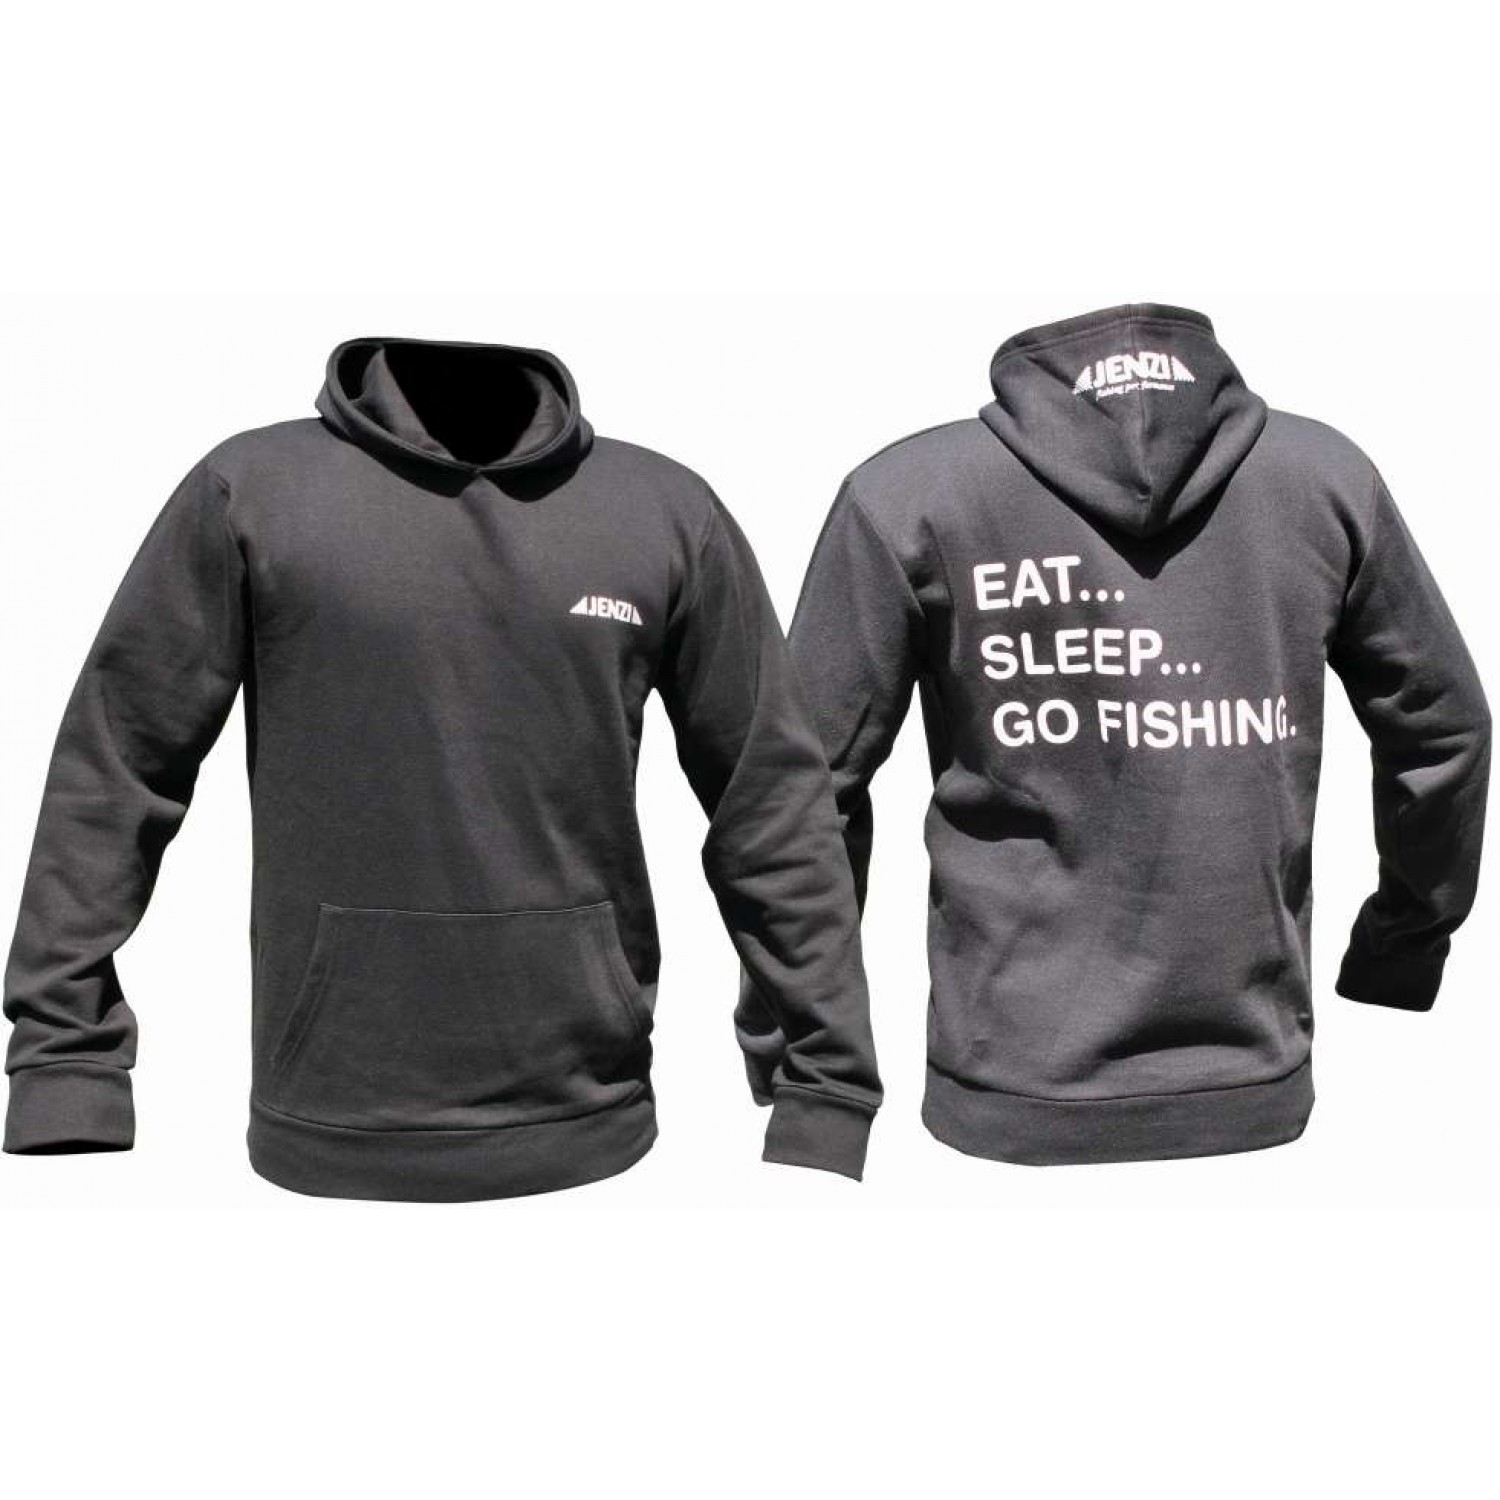 Jenzi Eat-Sleep-Go Fishing Sweat-shirt